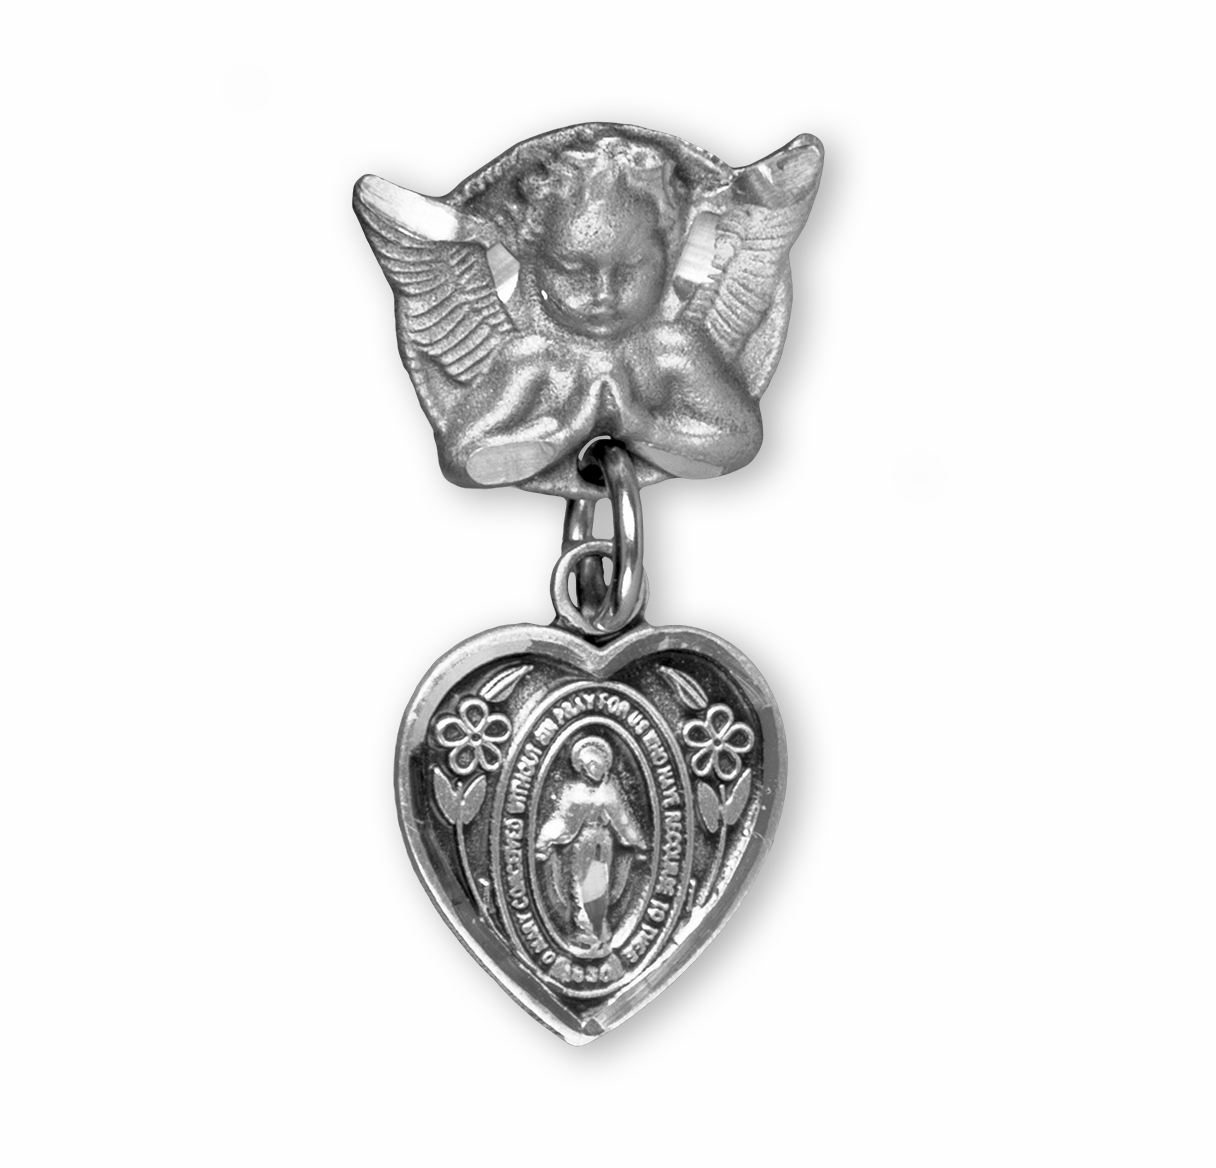 HMH Religious Heart Shaped Baby Miraculous w/Sterling Angel Pin Badge